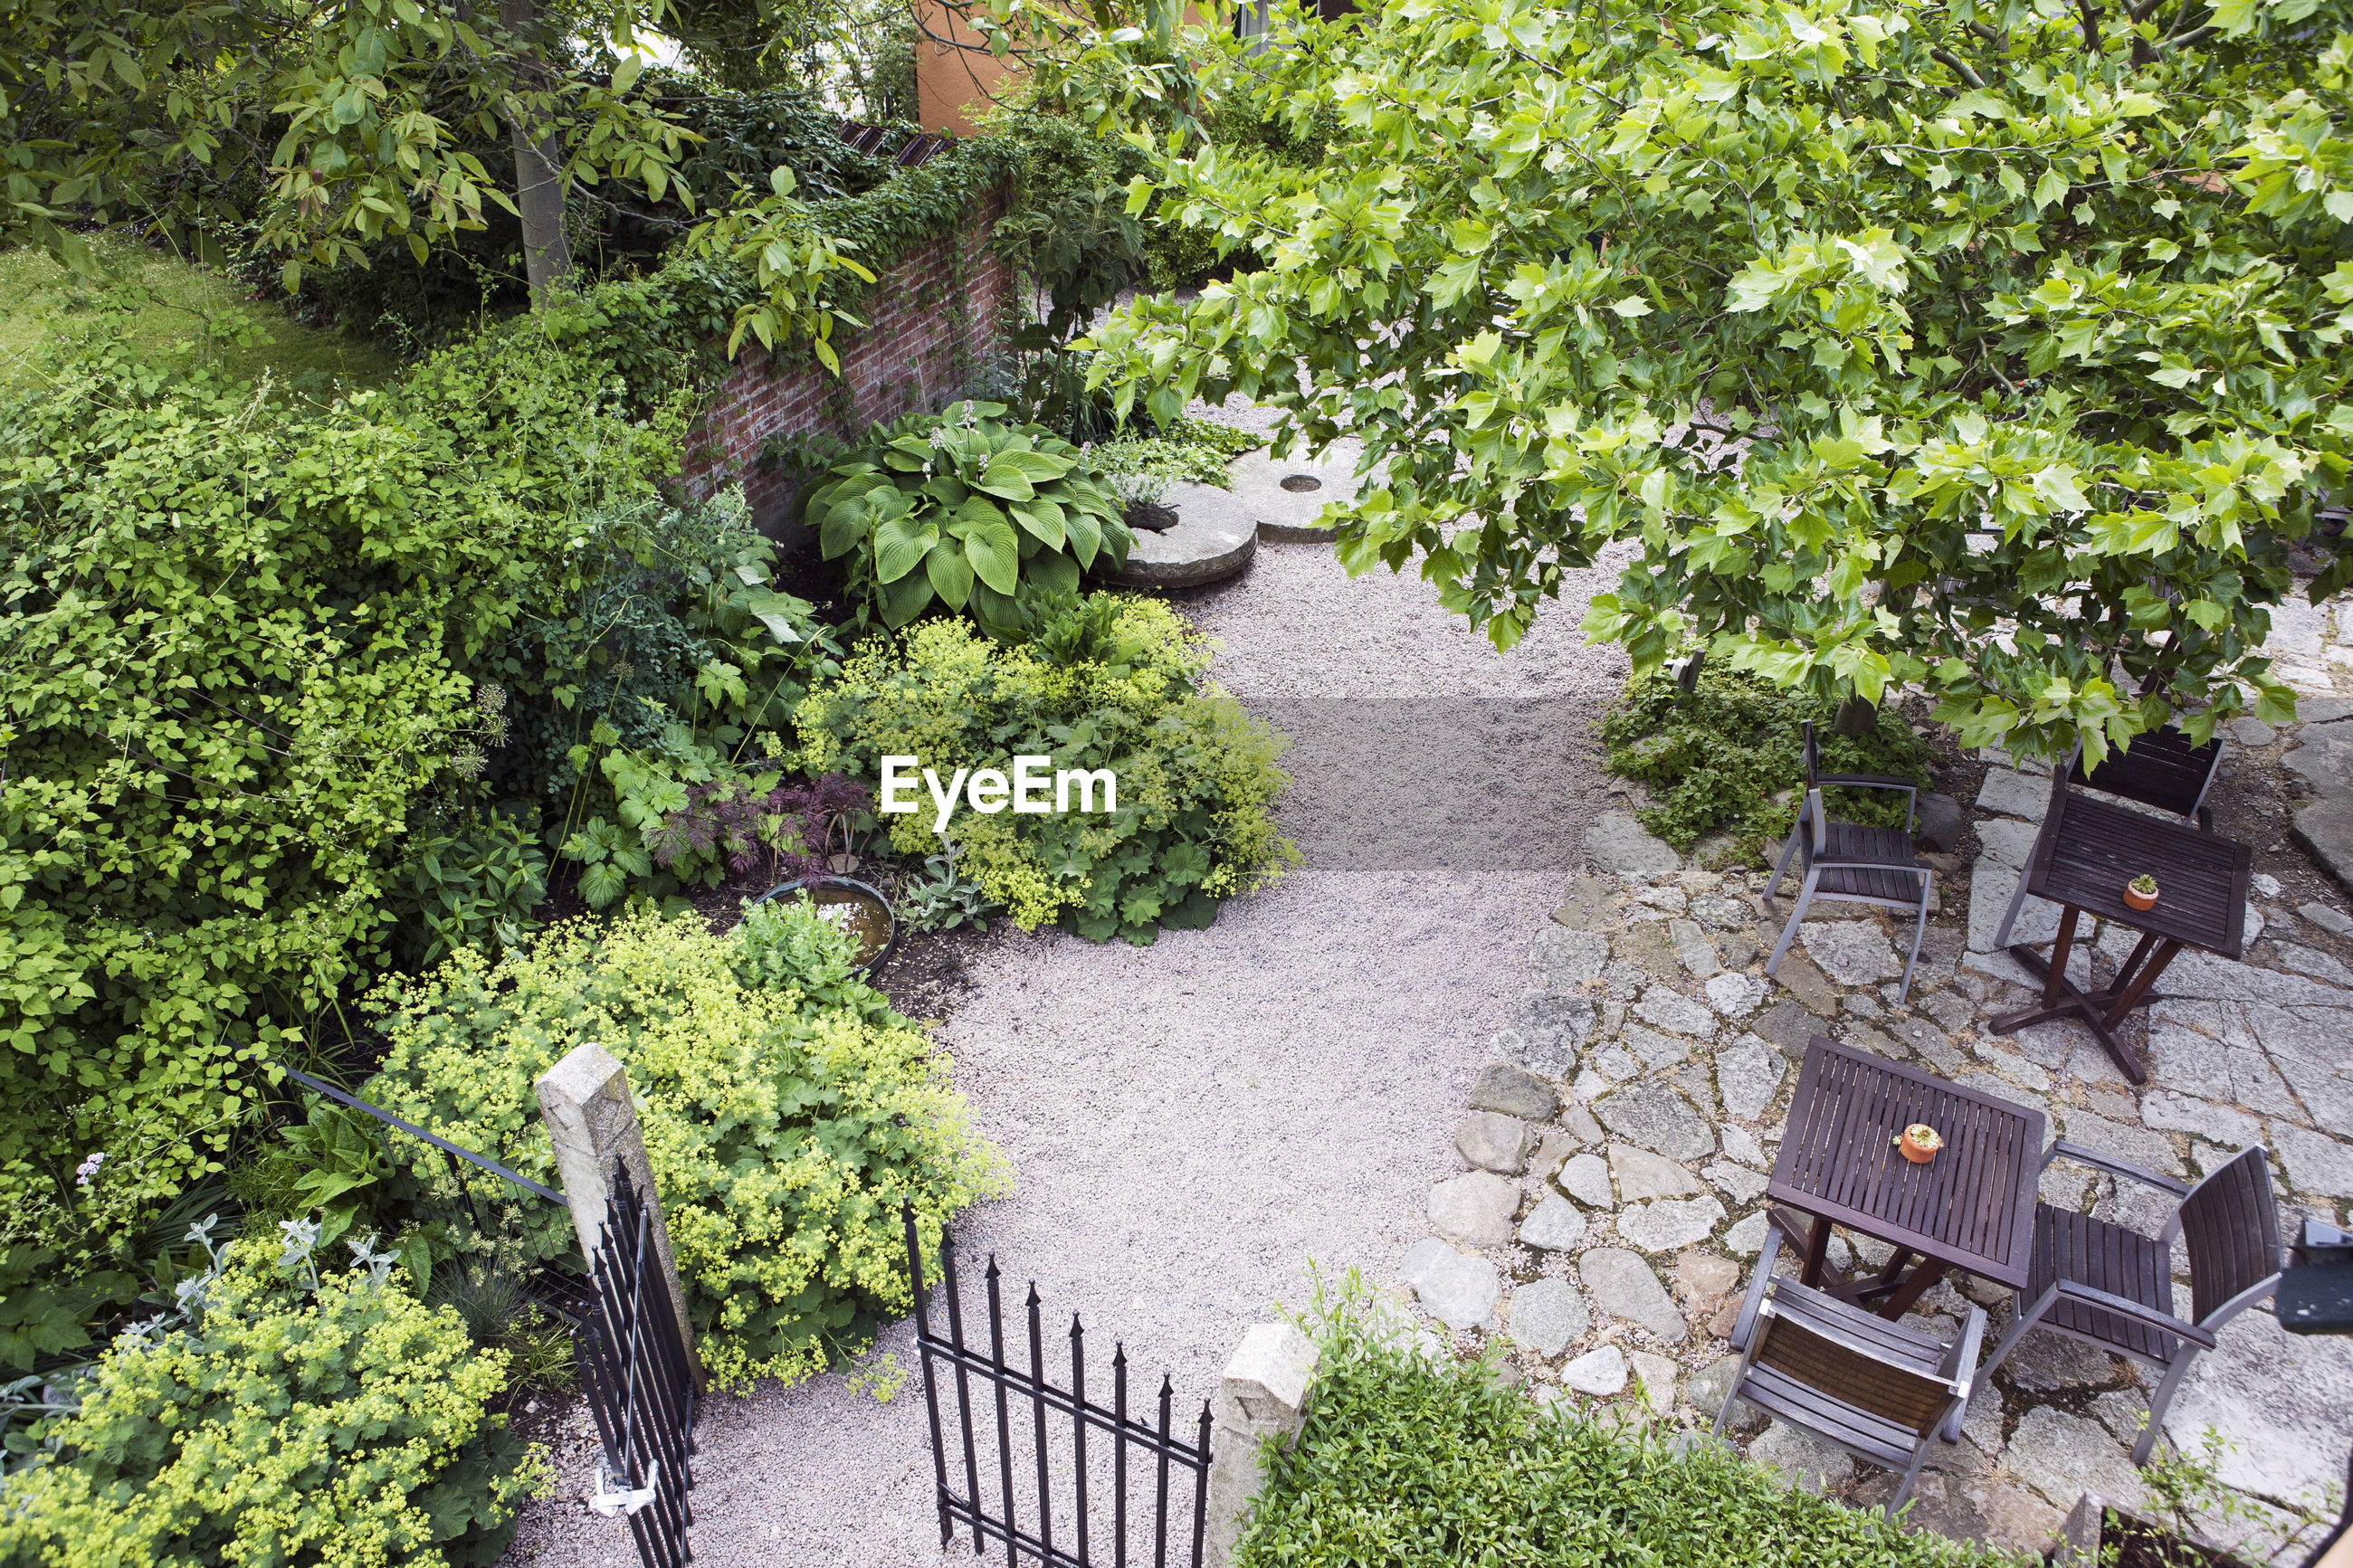 HIGH ANGLE VIEW OF PLANTS IN GARDEN